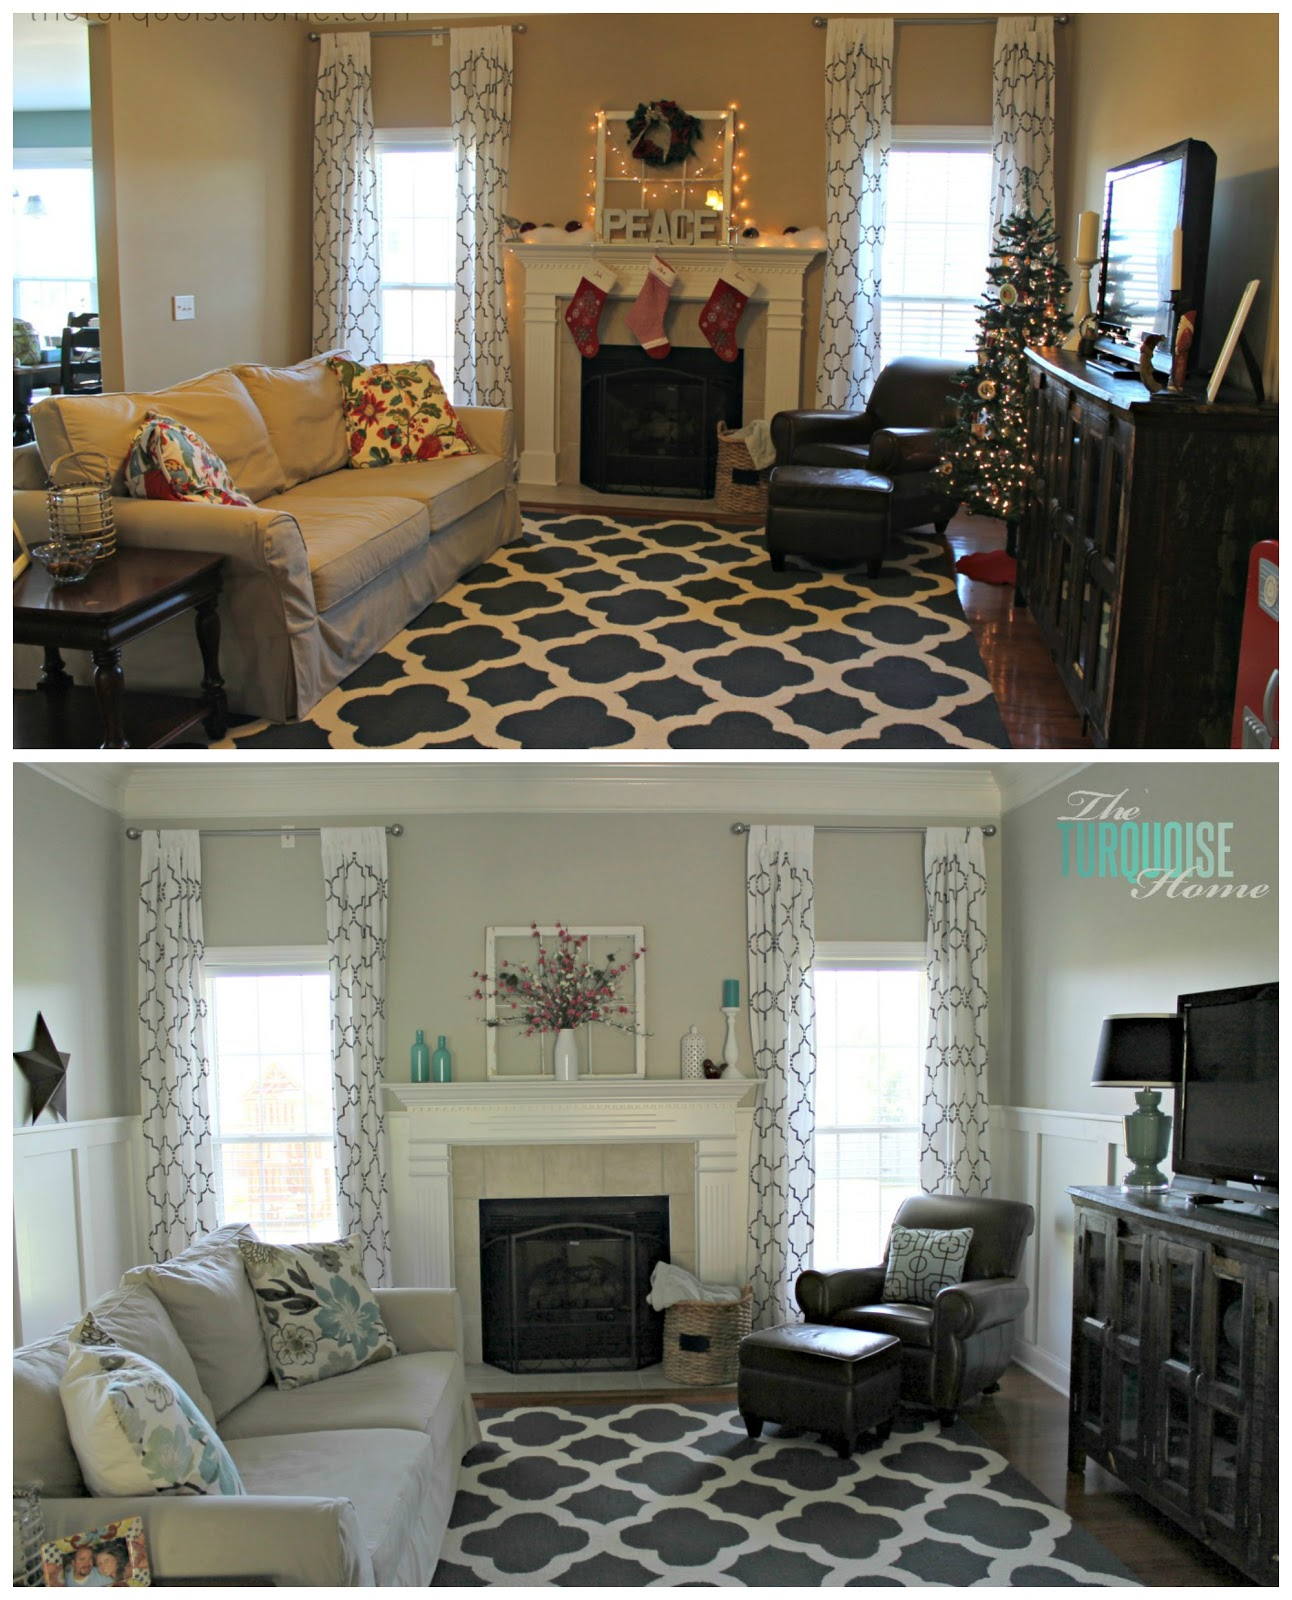 Living Room Makeover - Part 7: Final Reveal